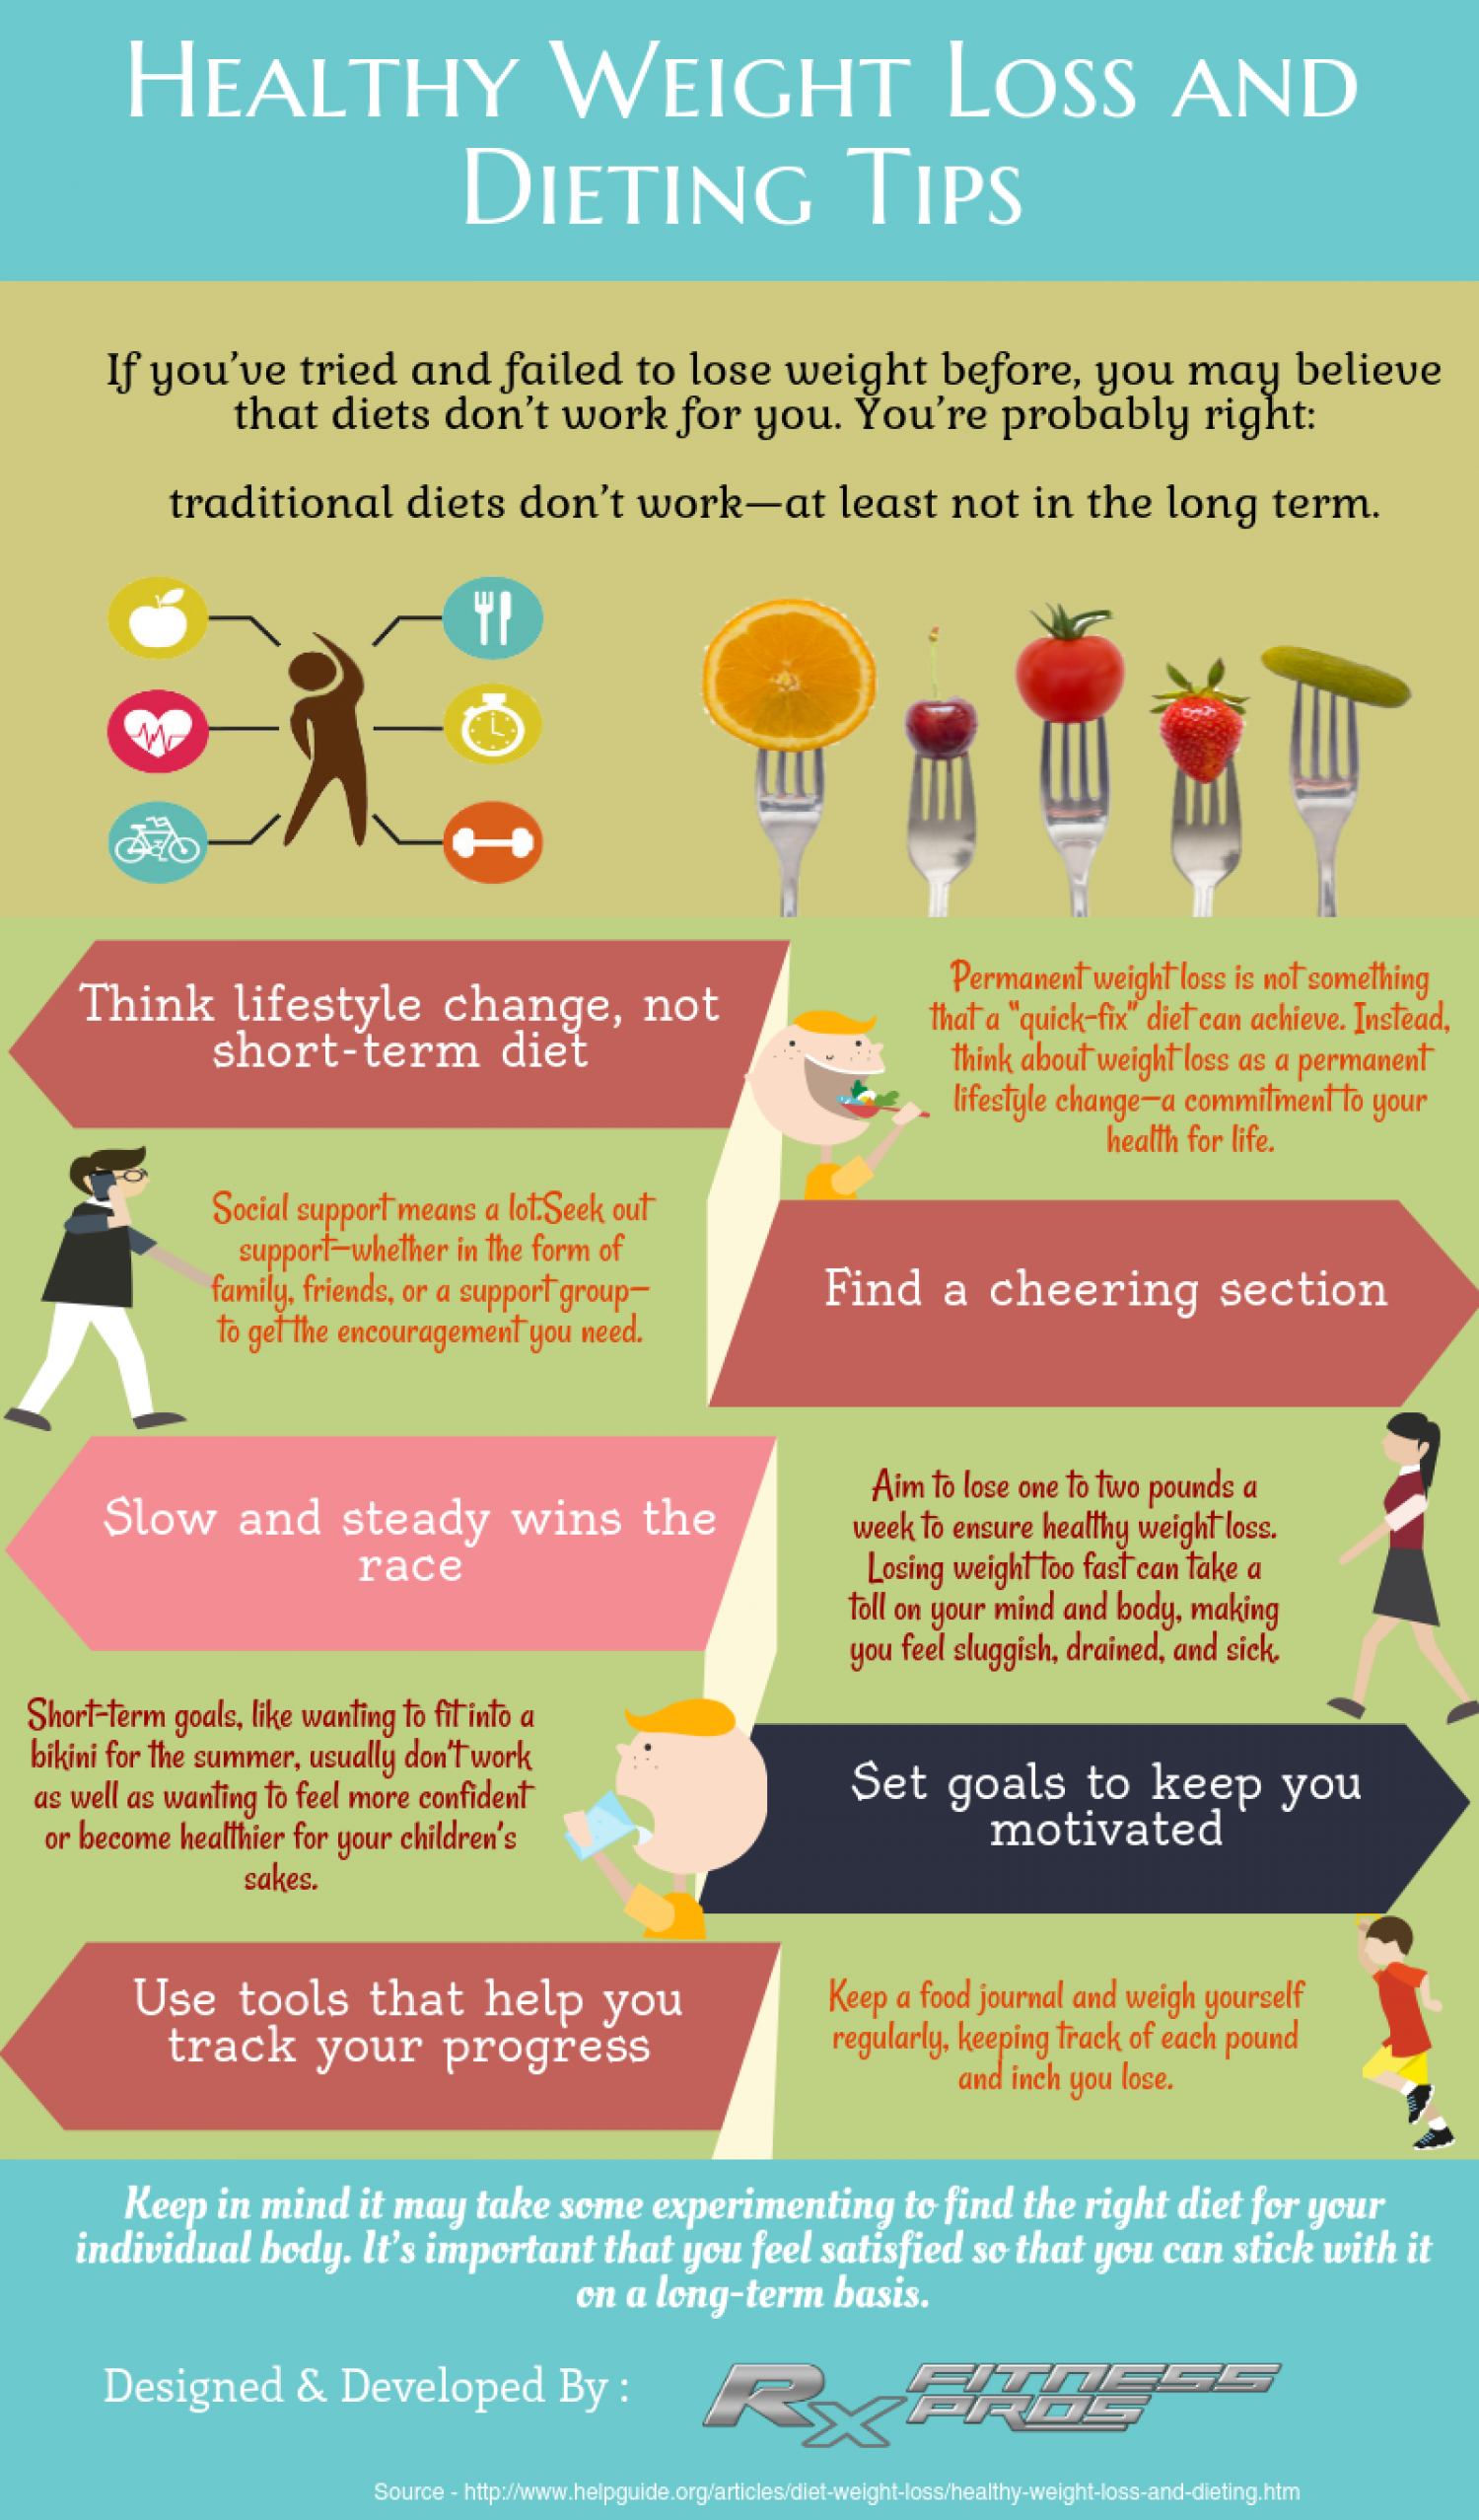 Healthy Weight Loss and Dieting Tips                                                                           Infographic